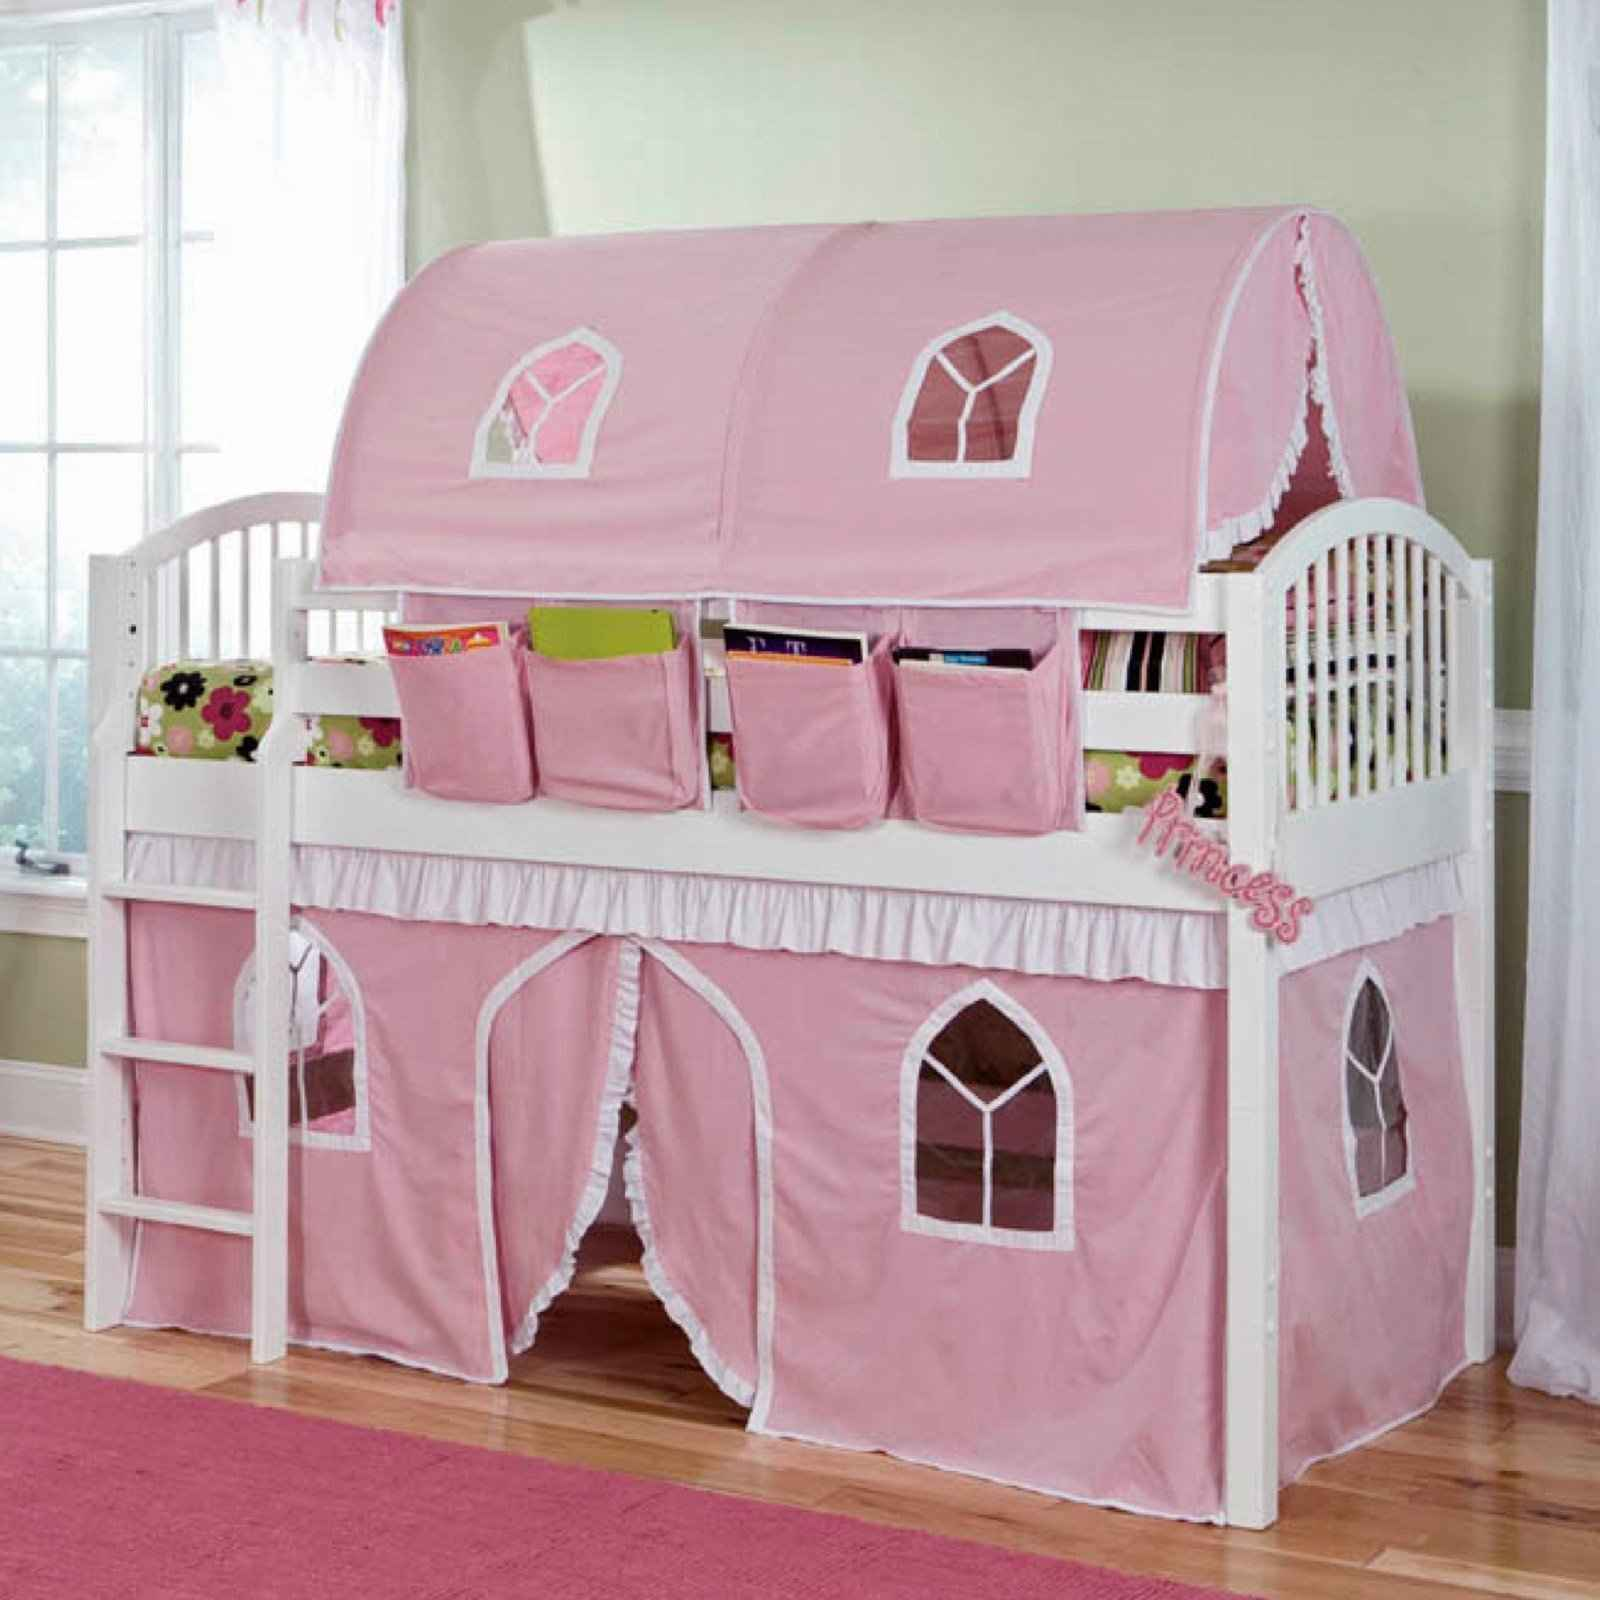 - Toddler Bed Canopy Tent Royals Courage : Good Sleeping With